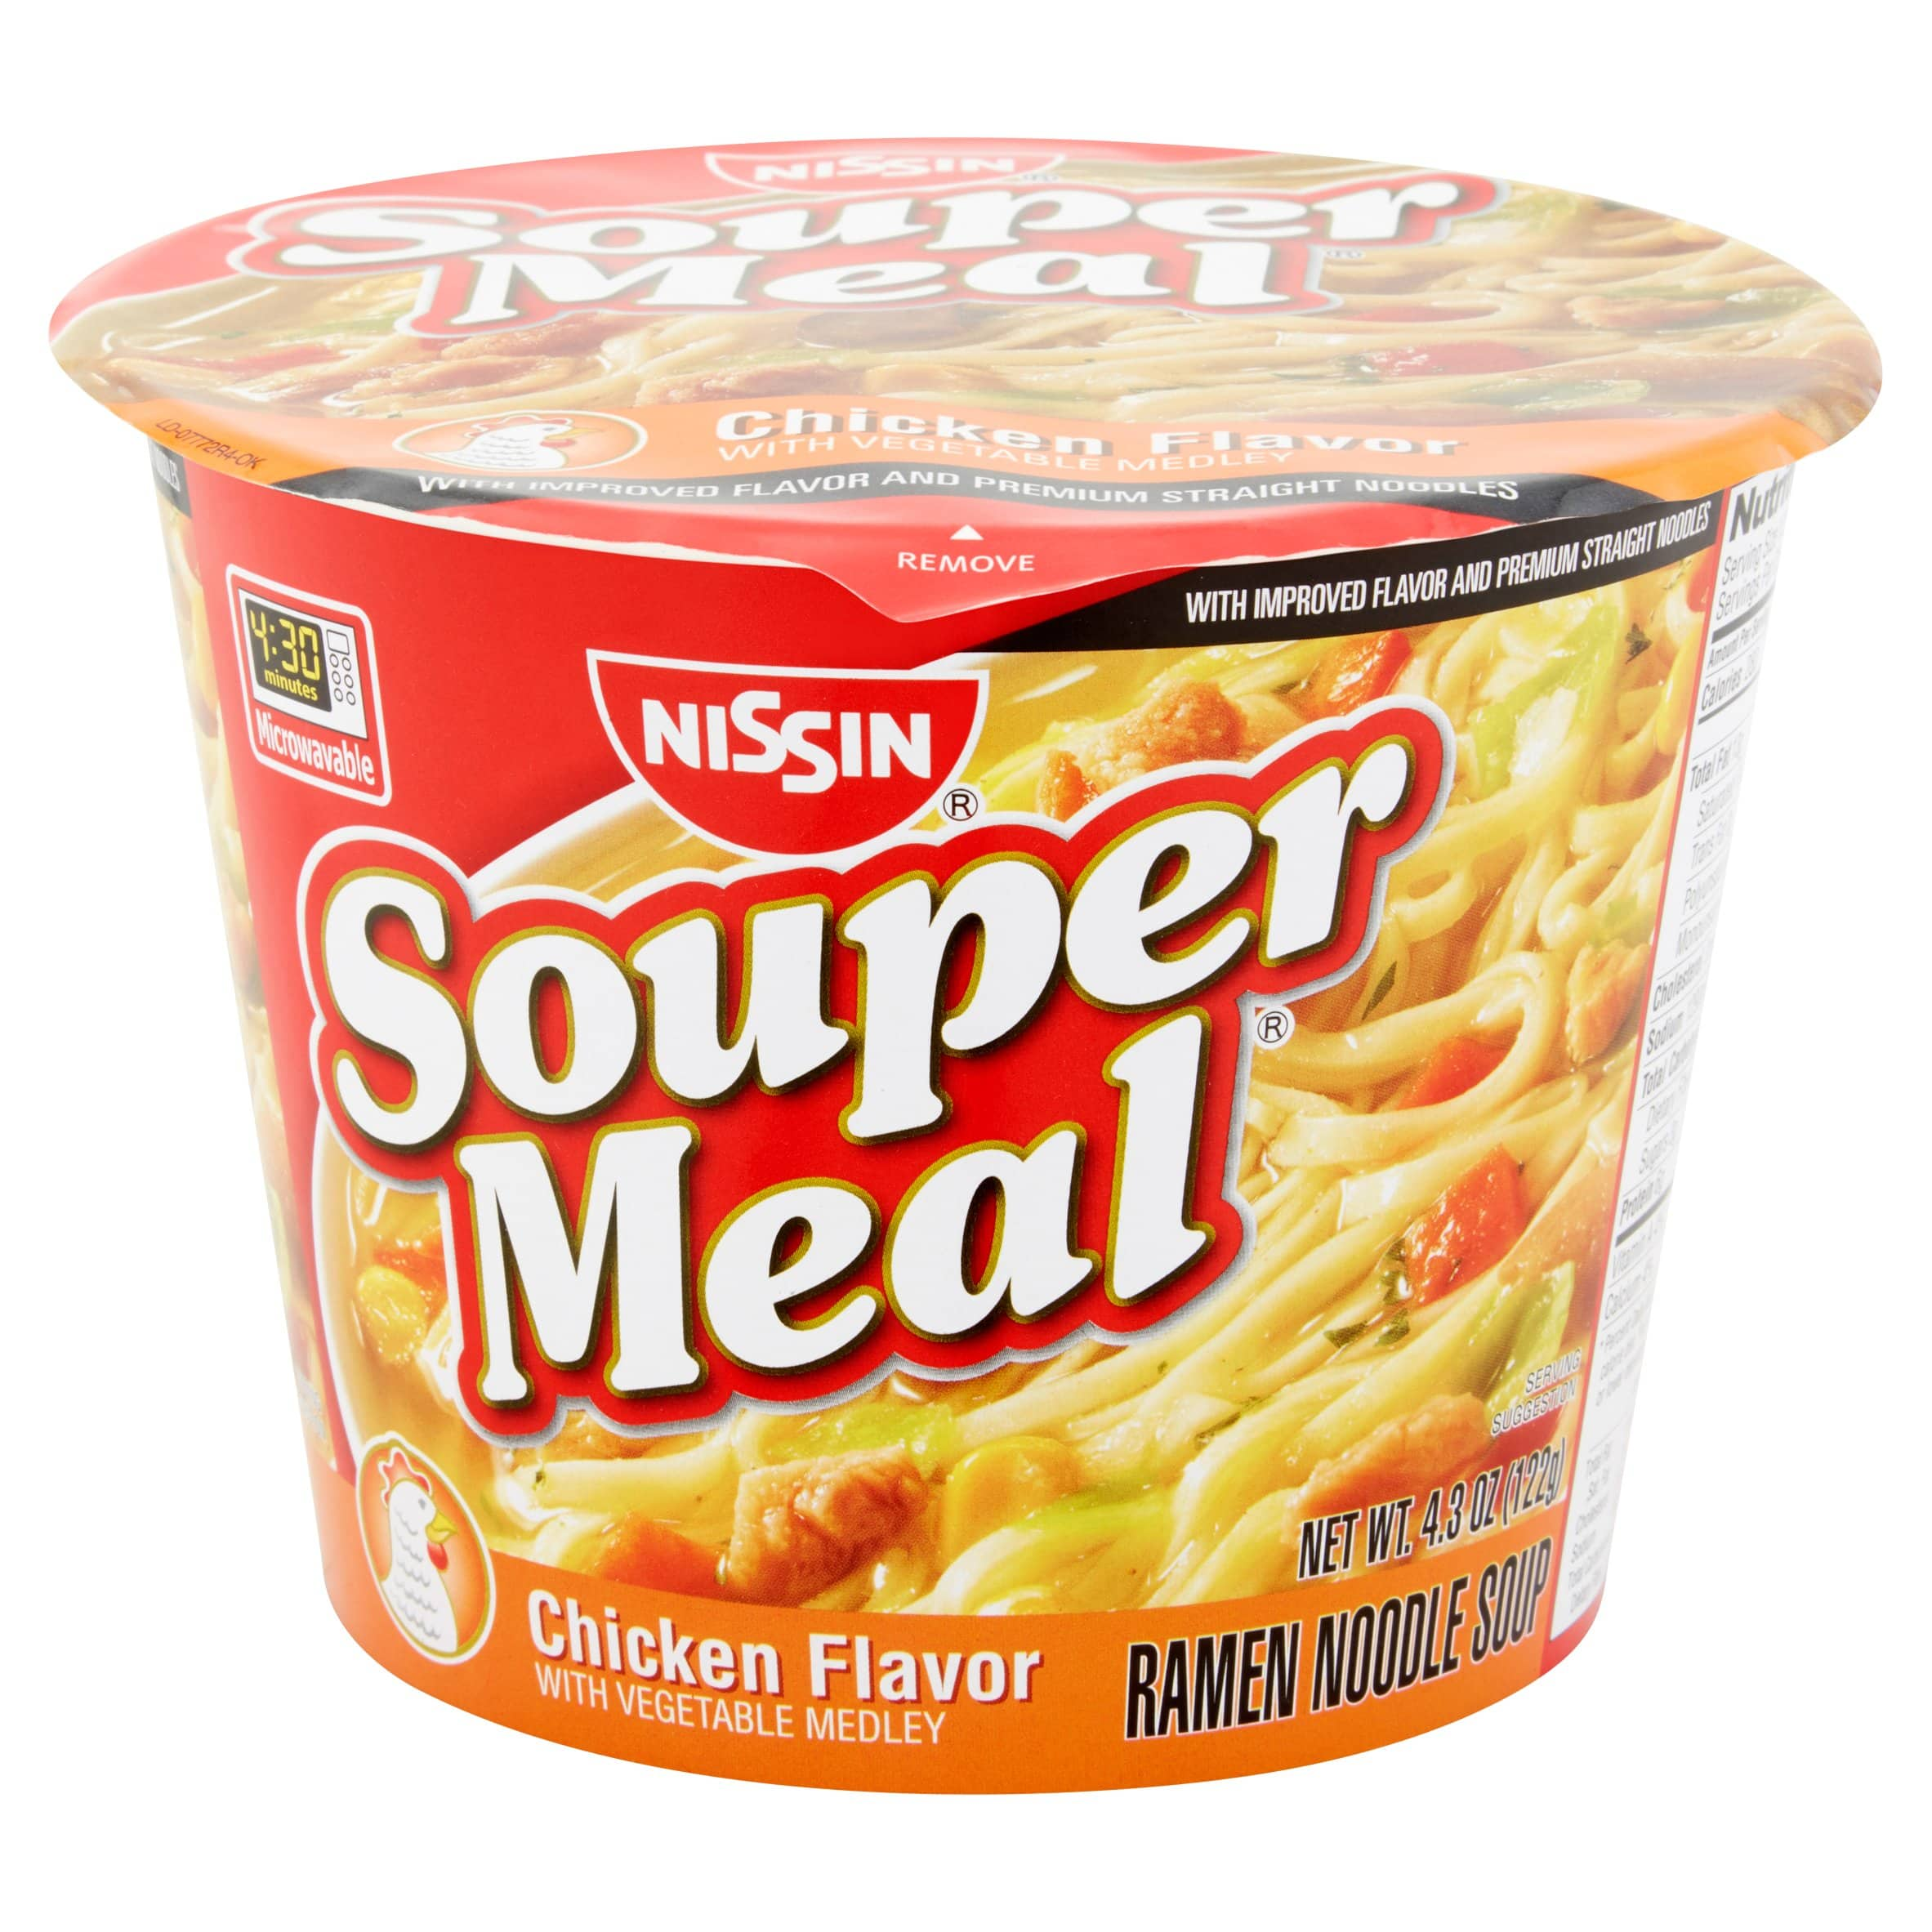 6 pack Nissin Souper Meal, Chicken, 4.3 Ounce: $3 or less w/S&S